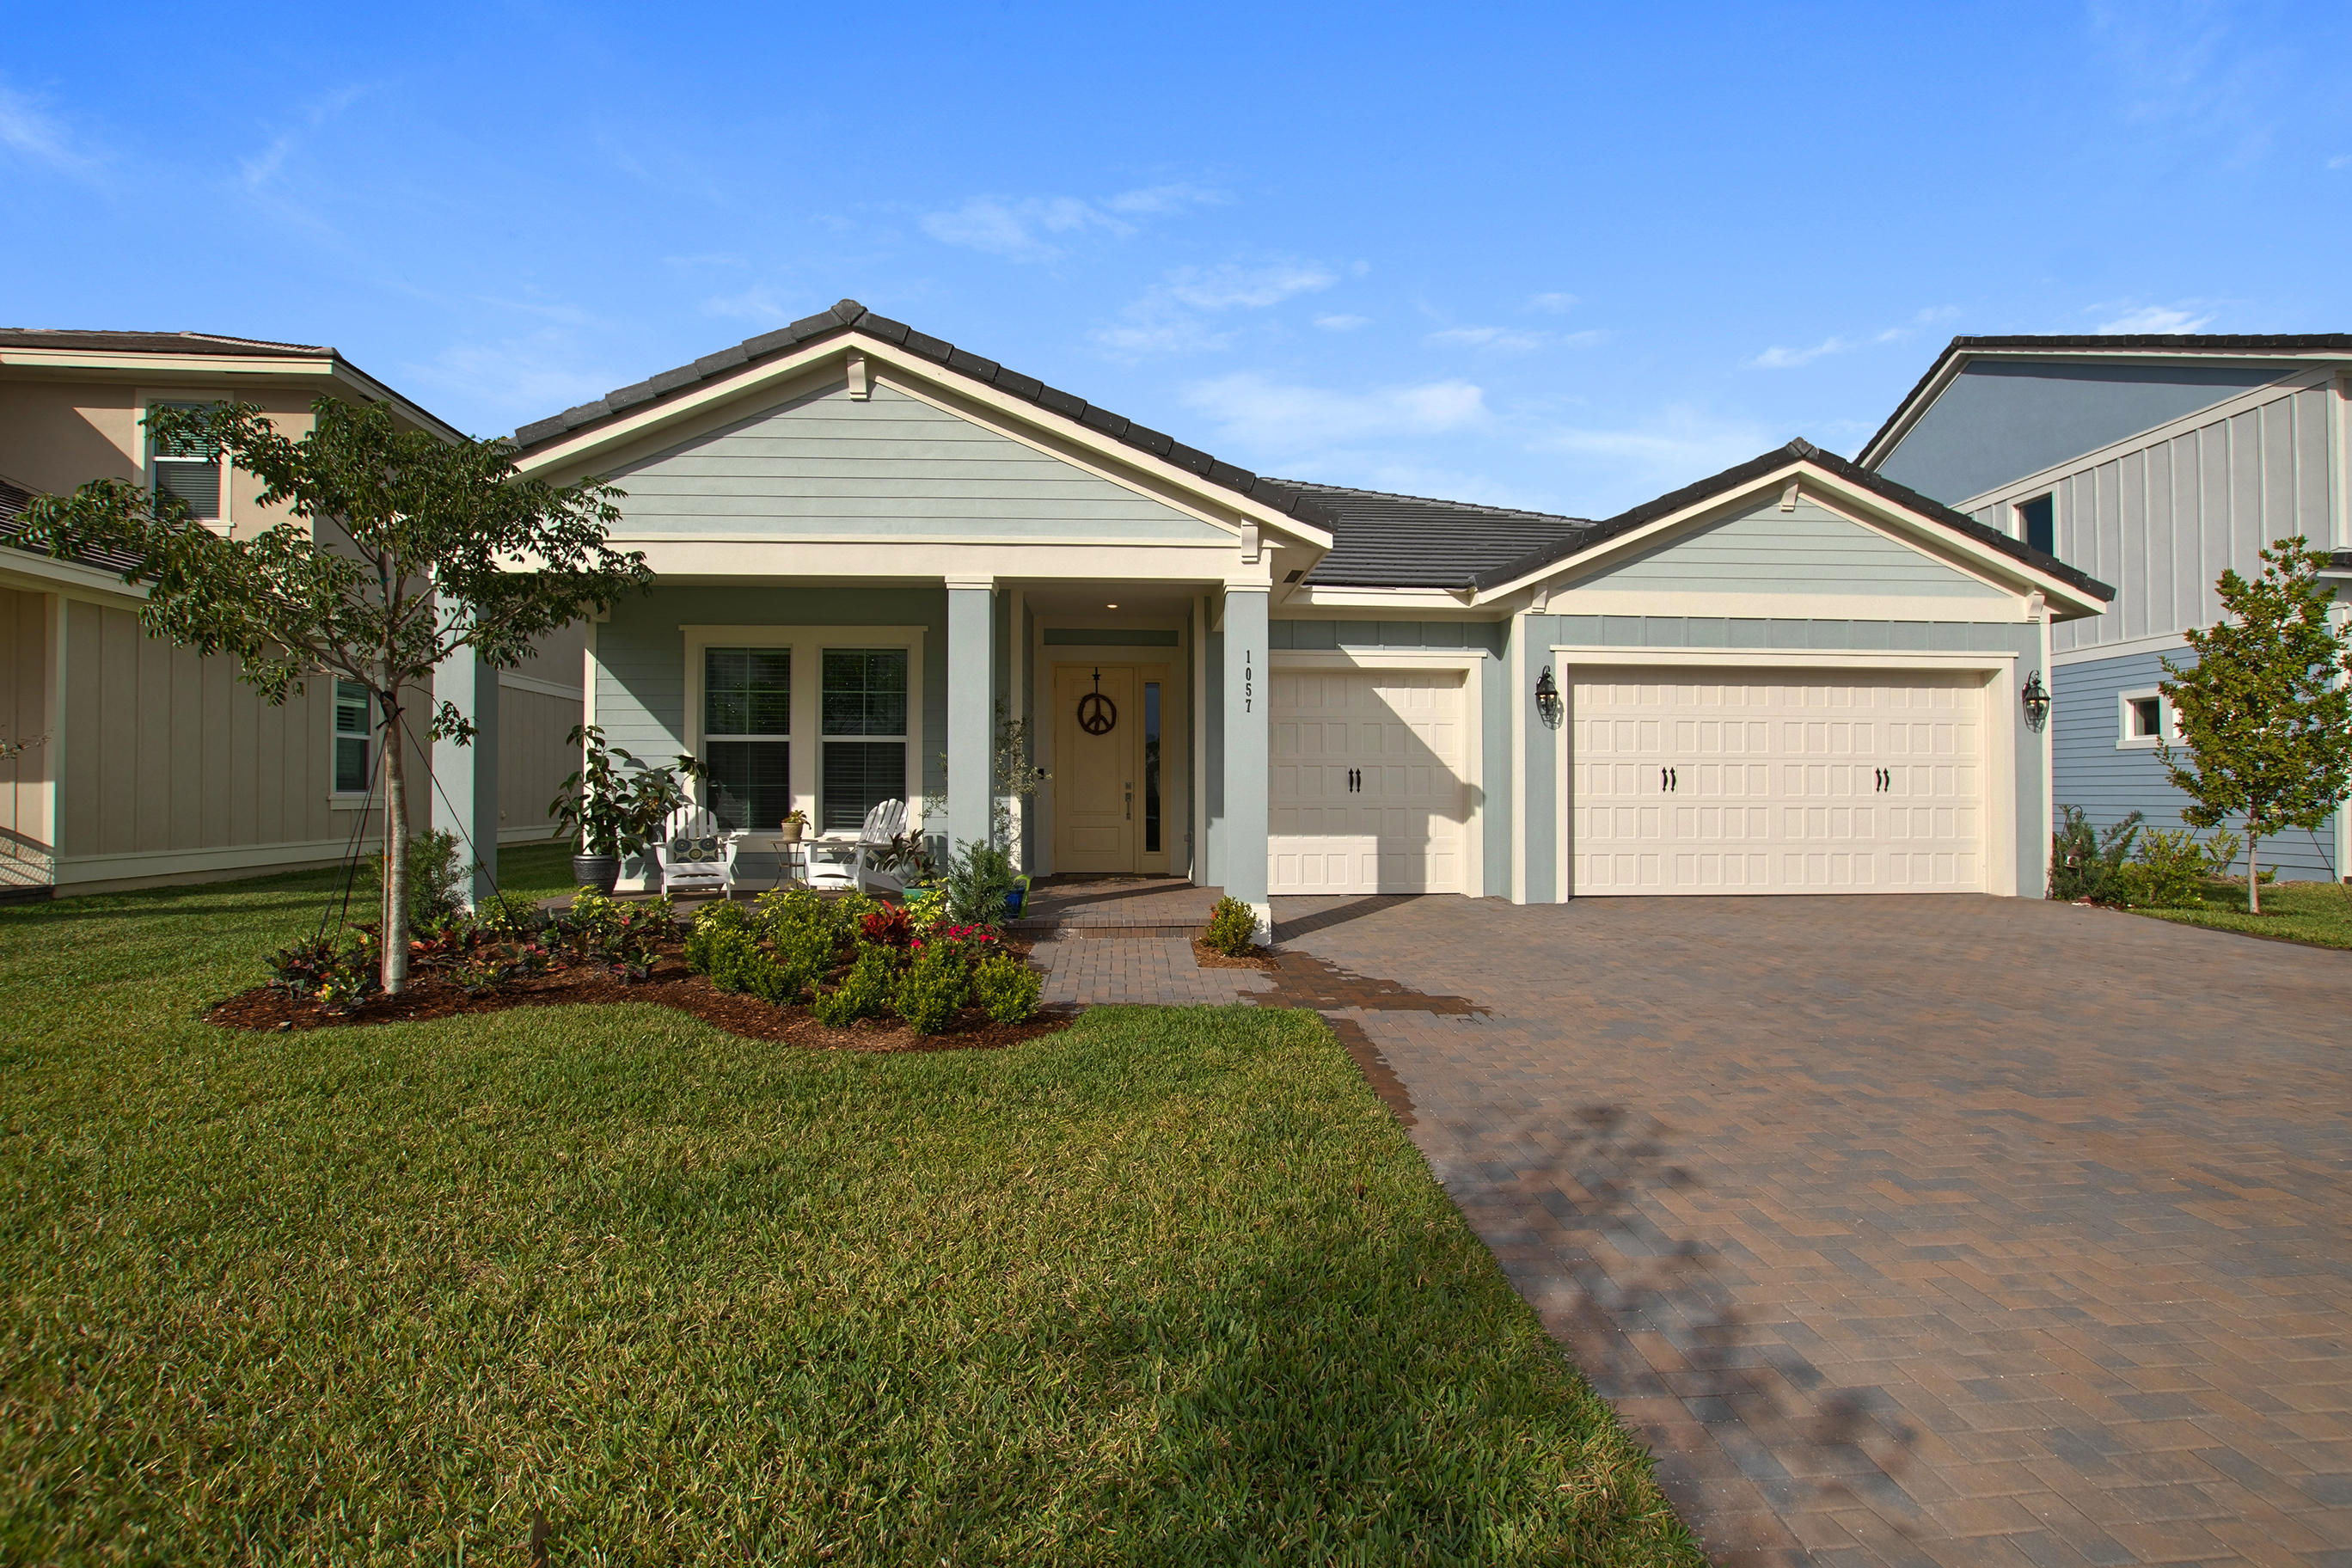 Home for sale in Arden Wellington Florida